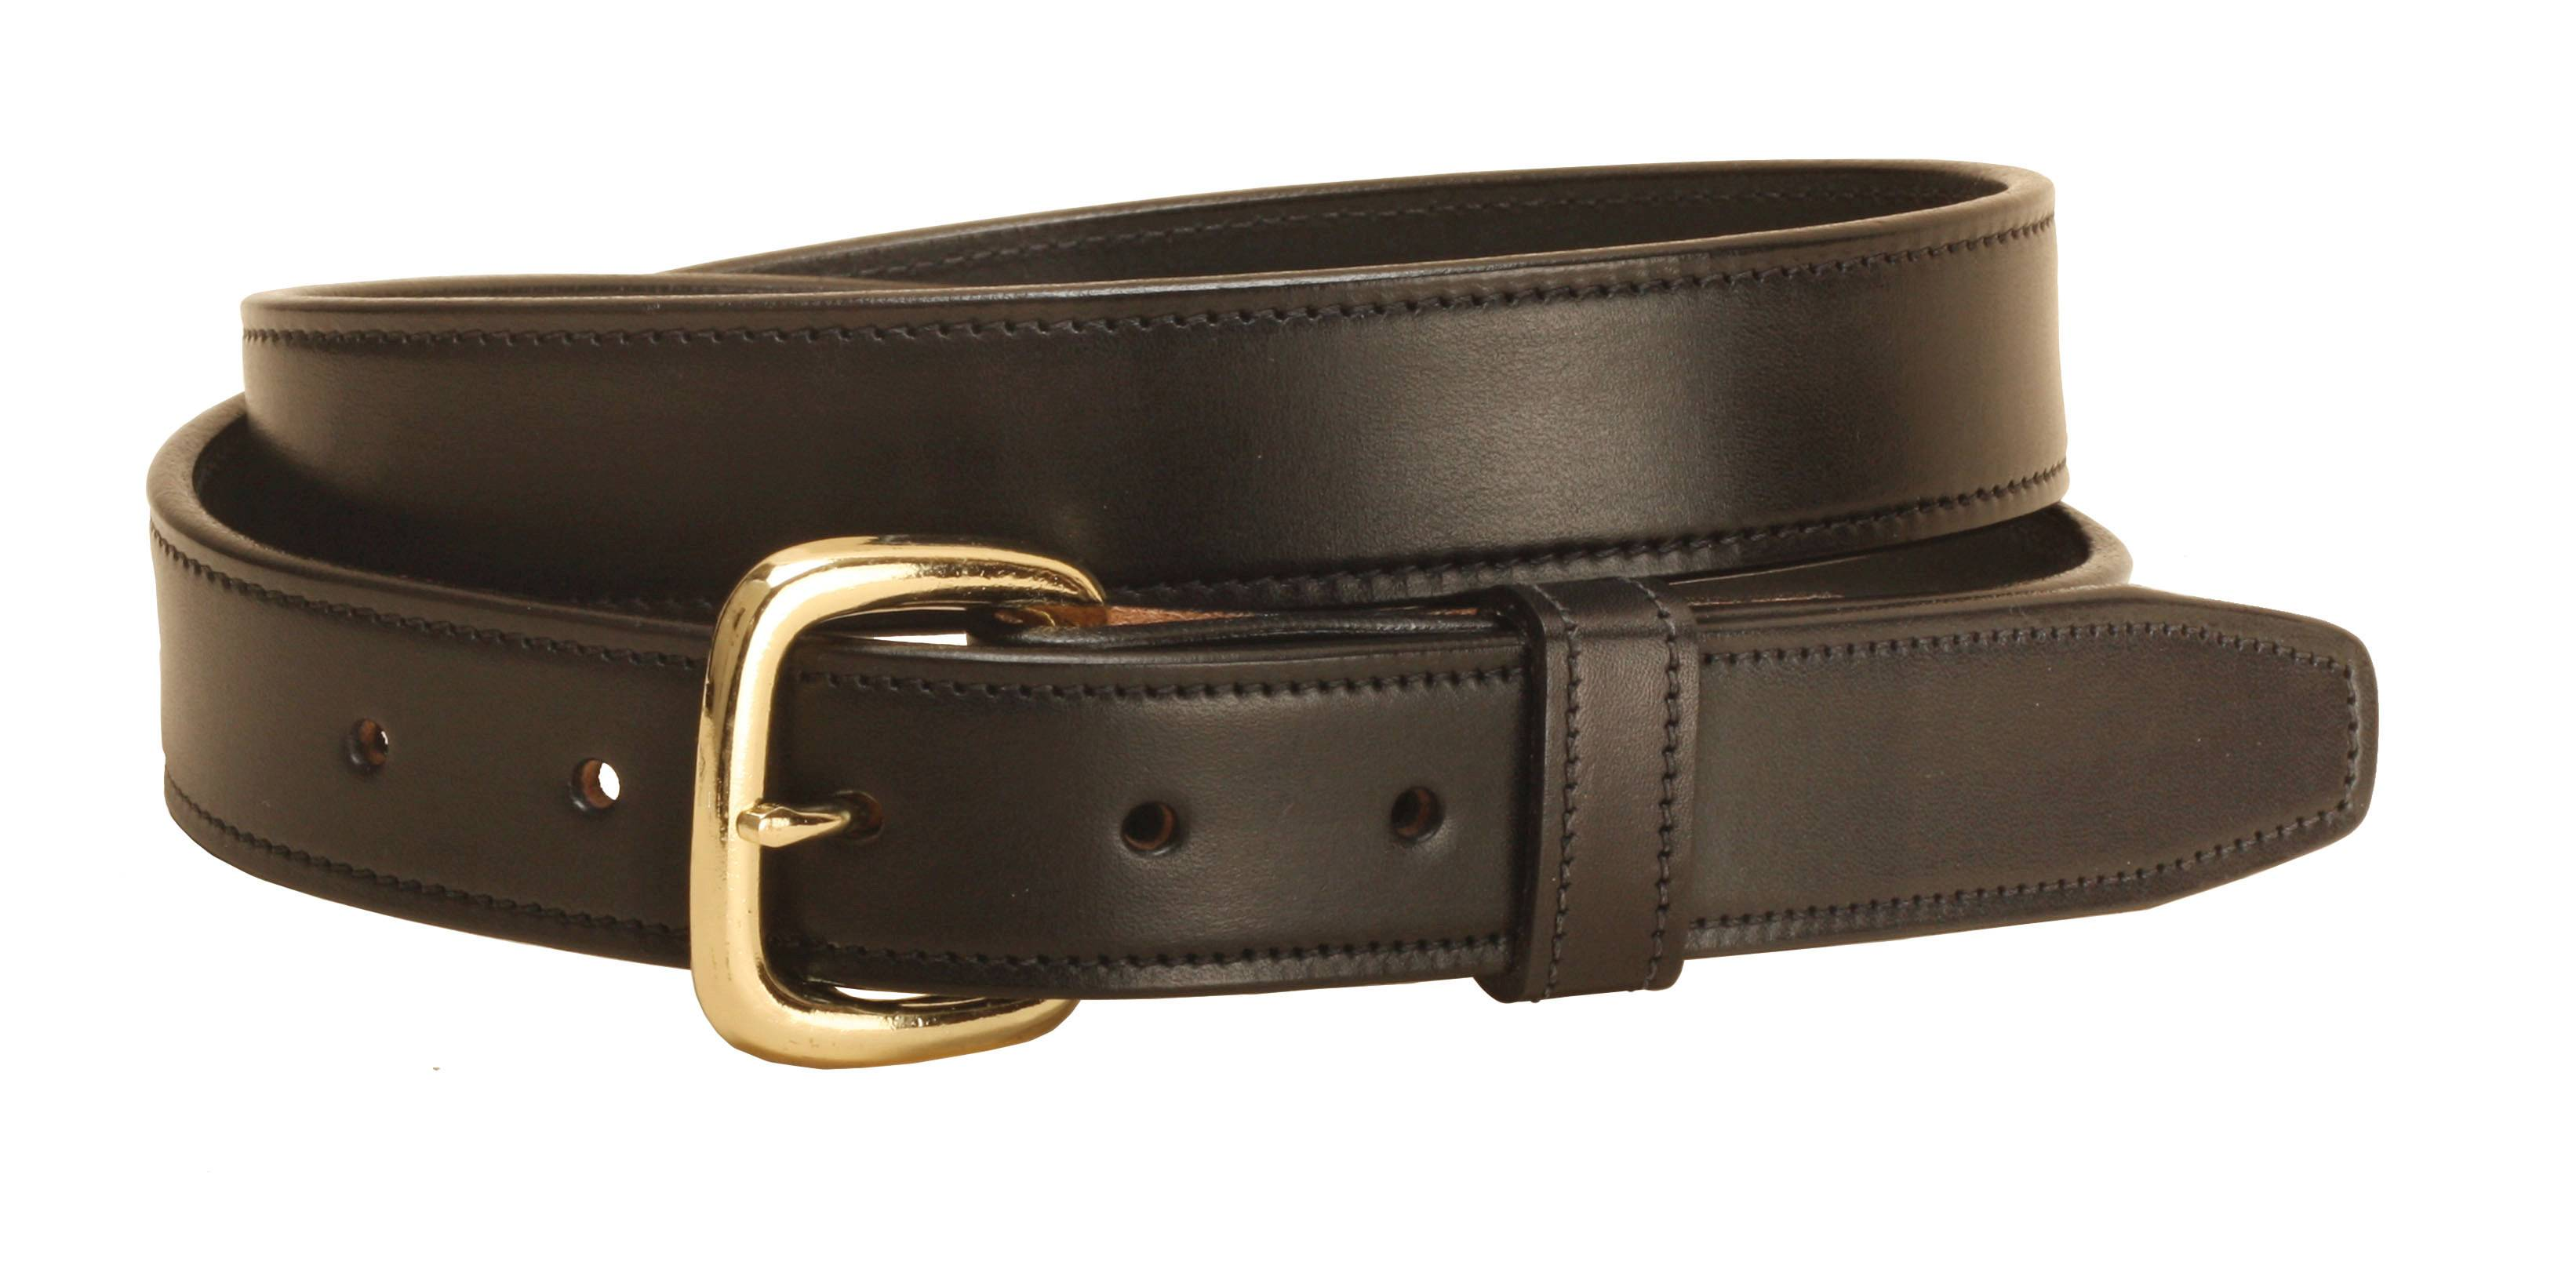 TORY LEATHER 1 1/4'' Stitched Belt with Brass Buckle